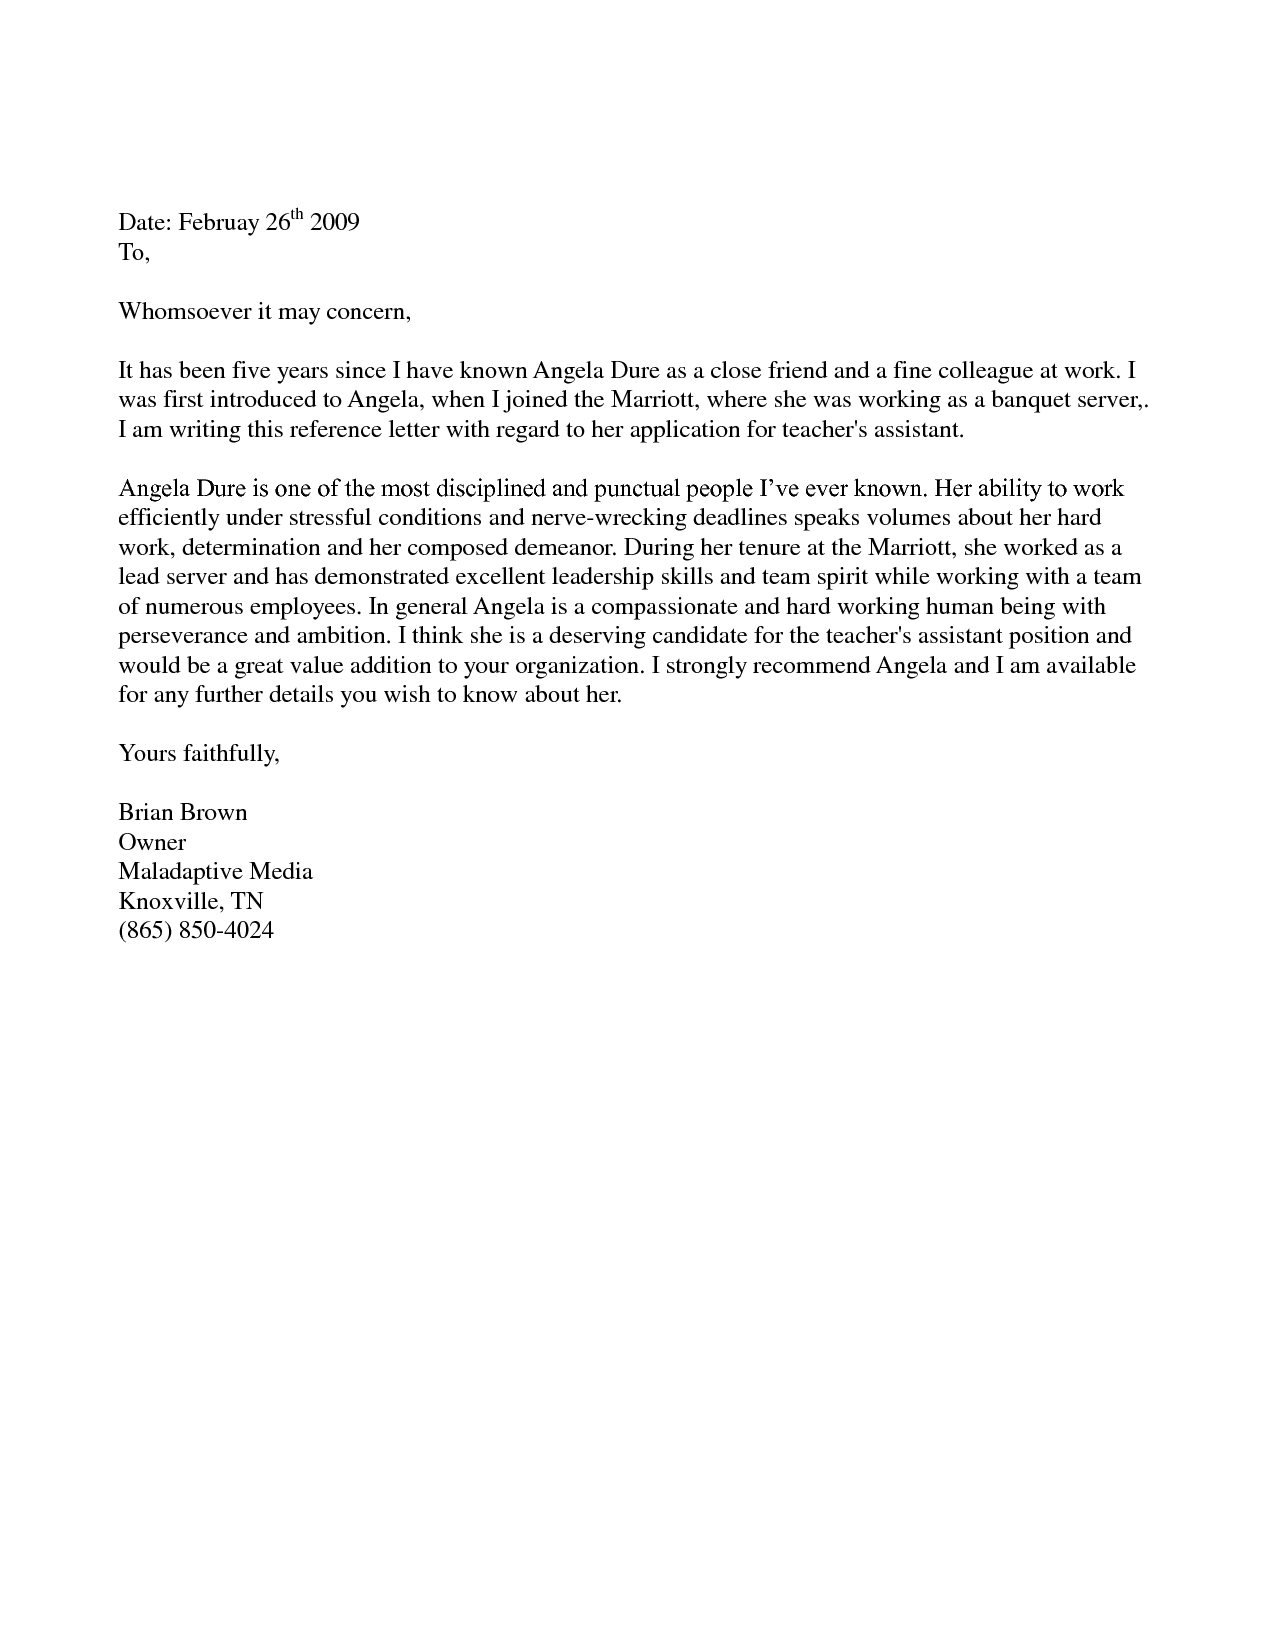 5+ Immigration Reference Letter Templates Free Sample, Example